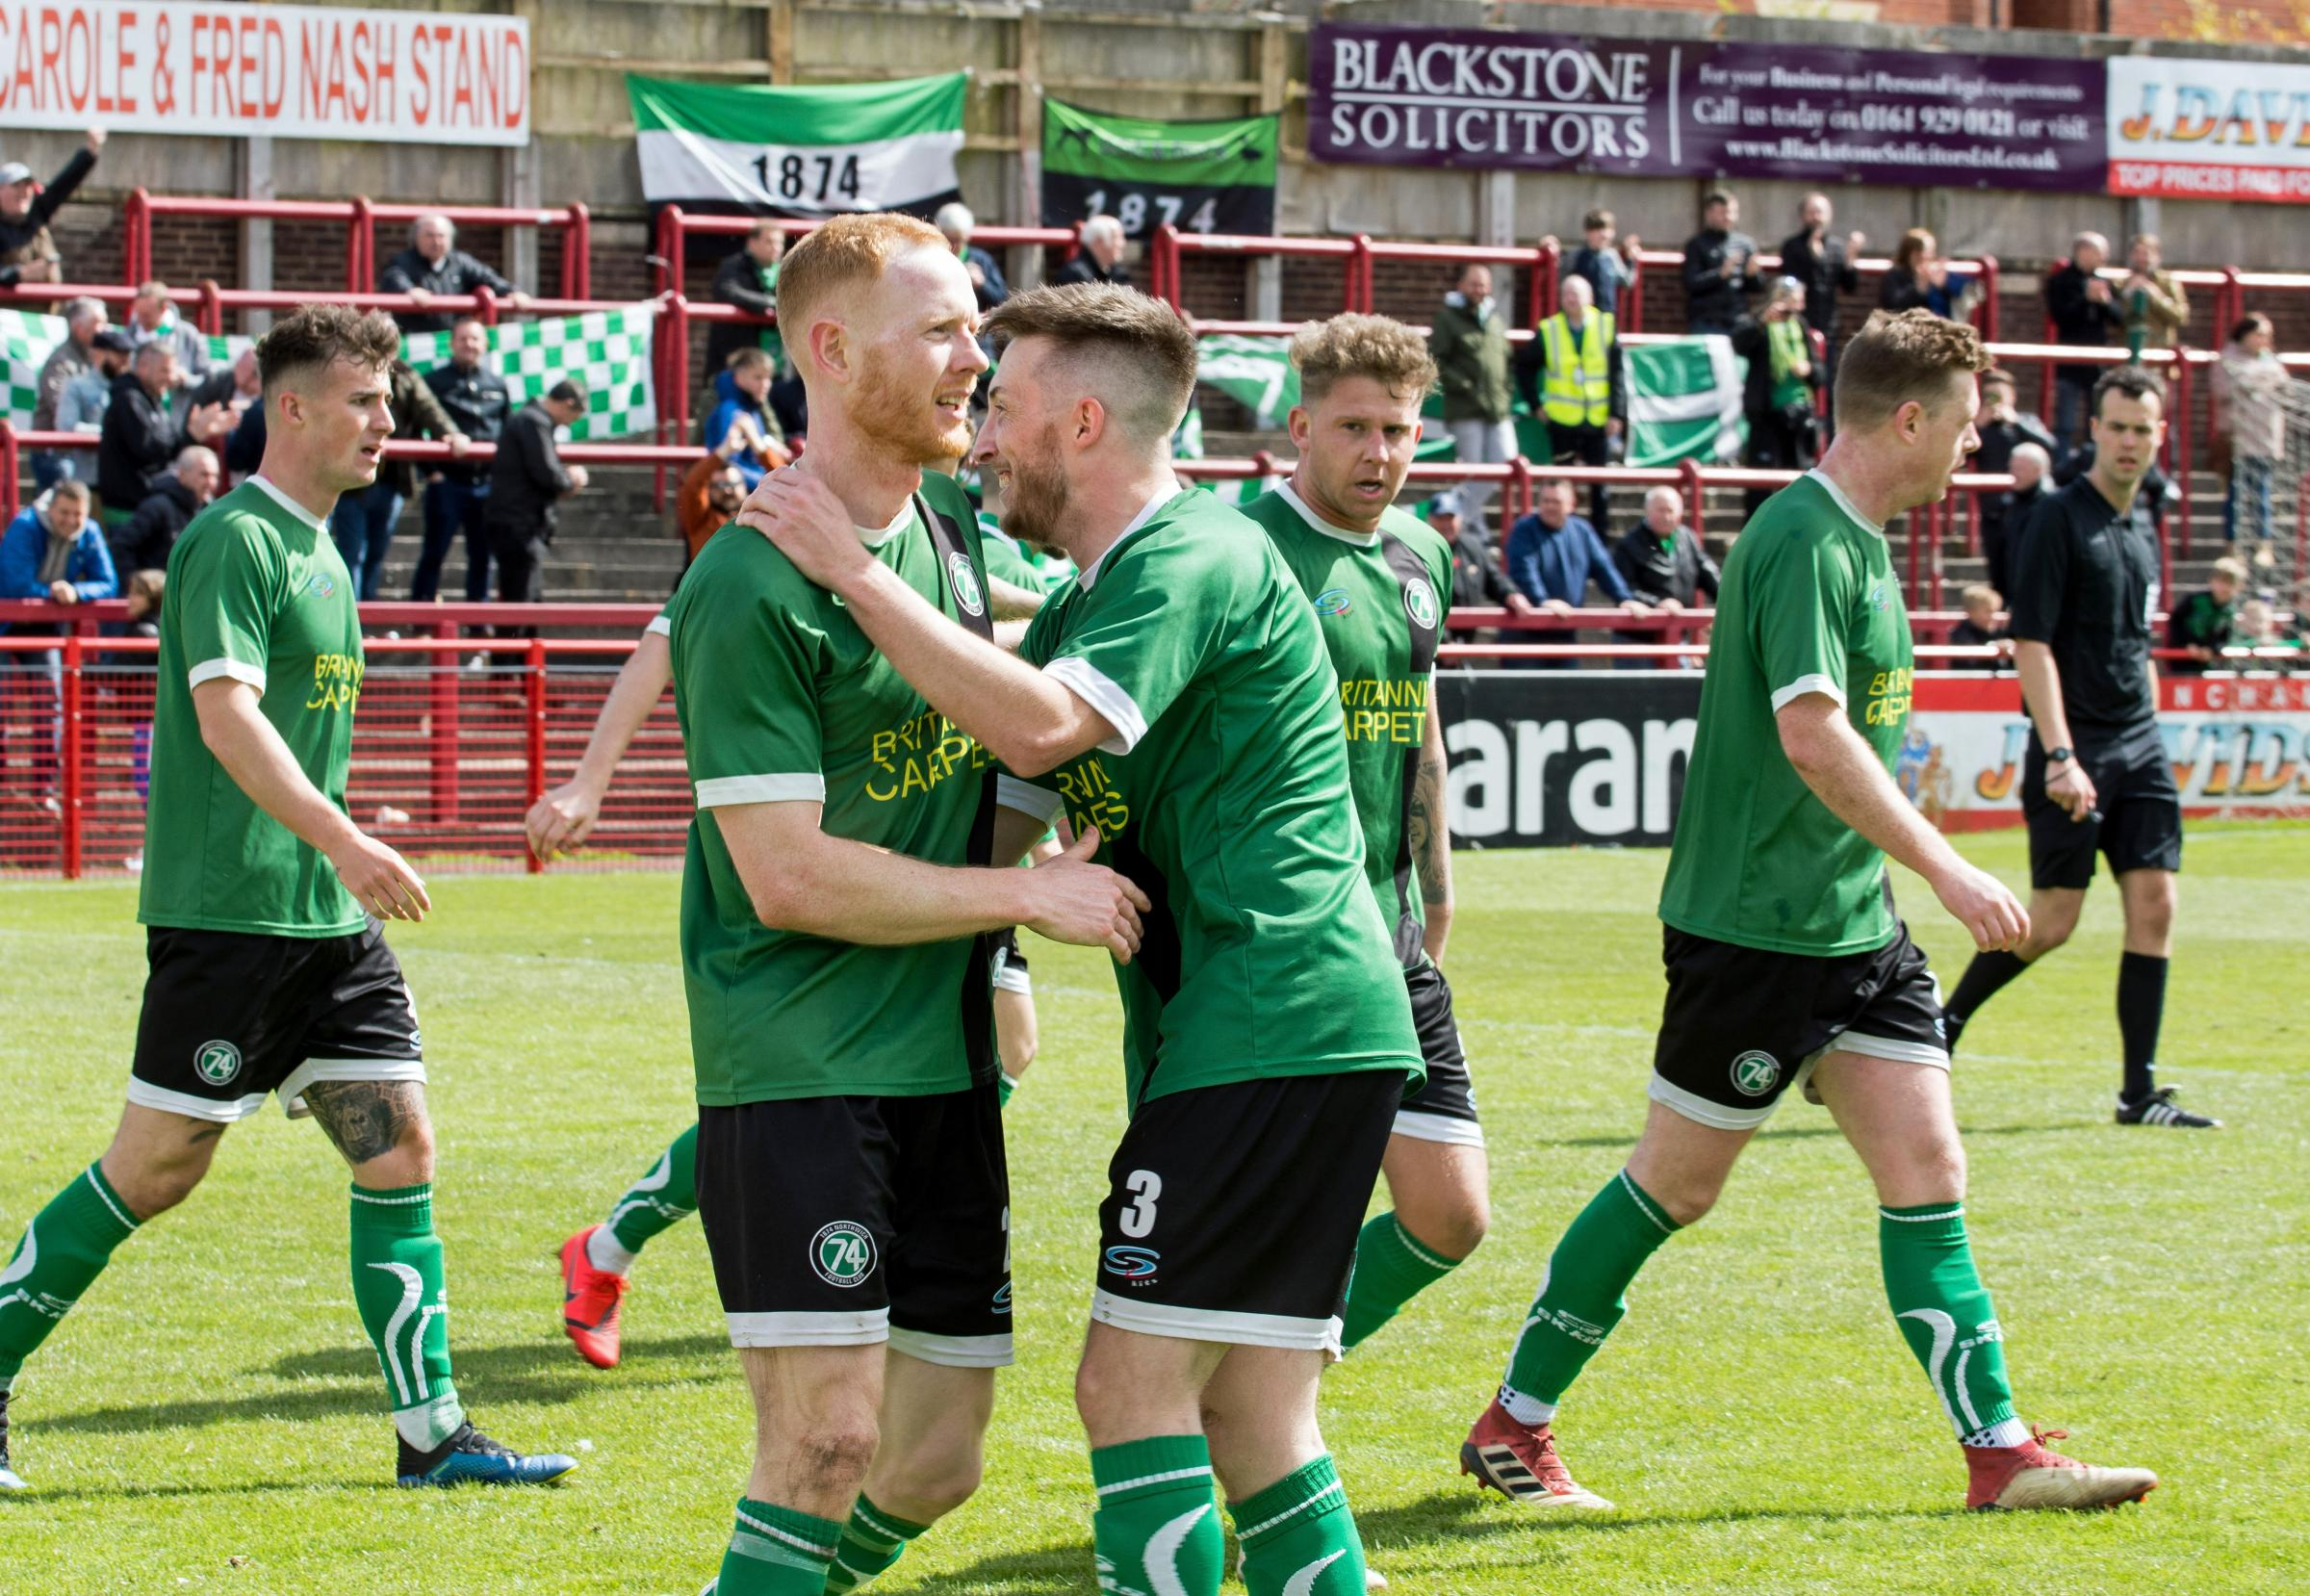 Sam Hind, left, and Matthew Russell celebrate following 1874 Northwich's goal during their Macron Cup final encounter with City of Liverpool at Moss Lane on Saturday. Picture: Ian Dutton